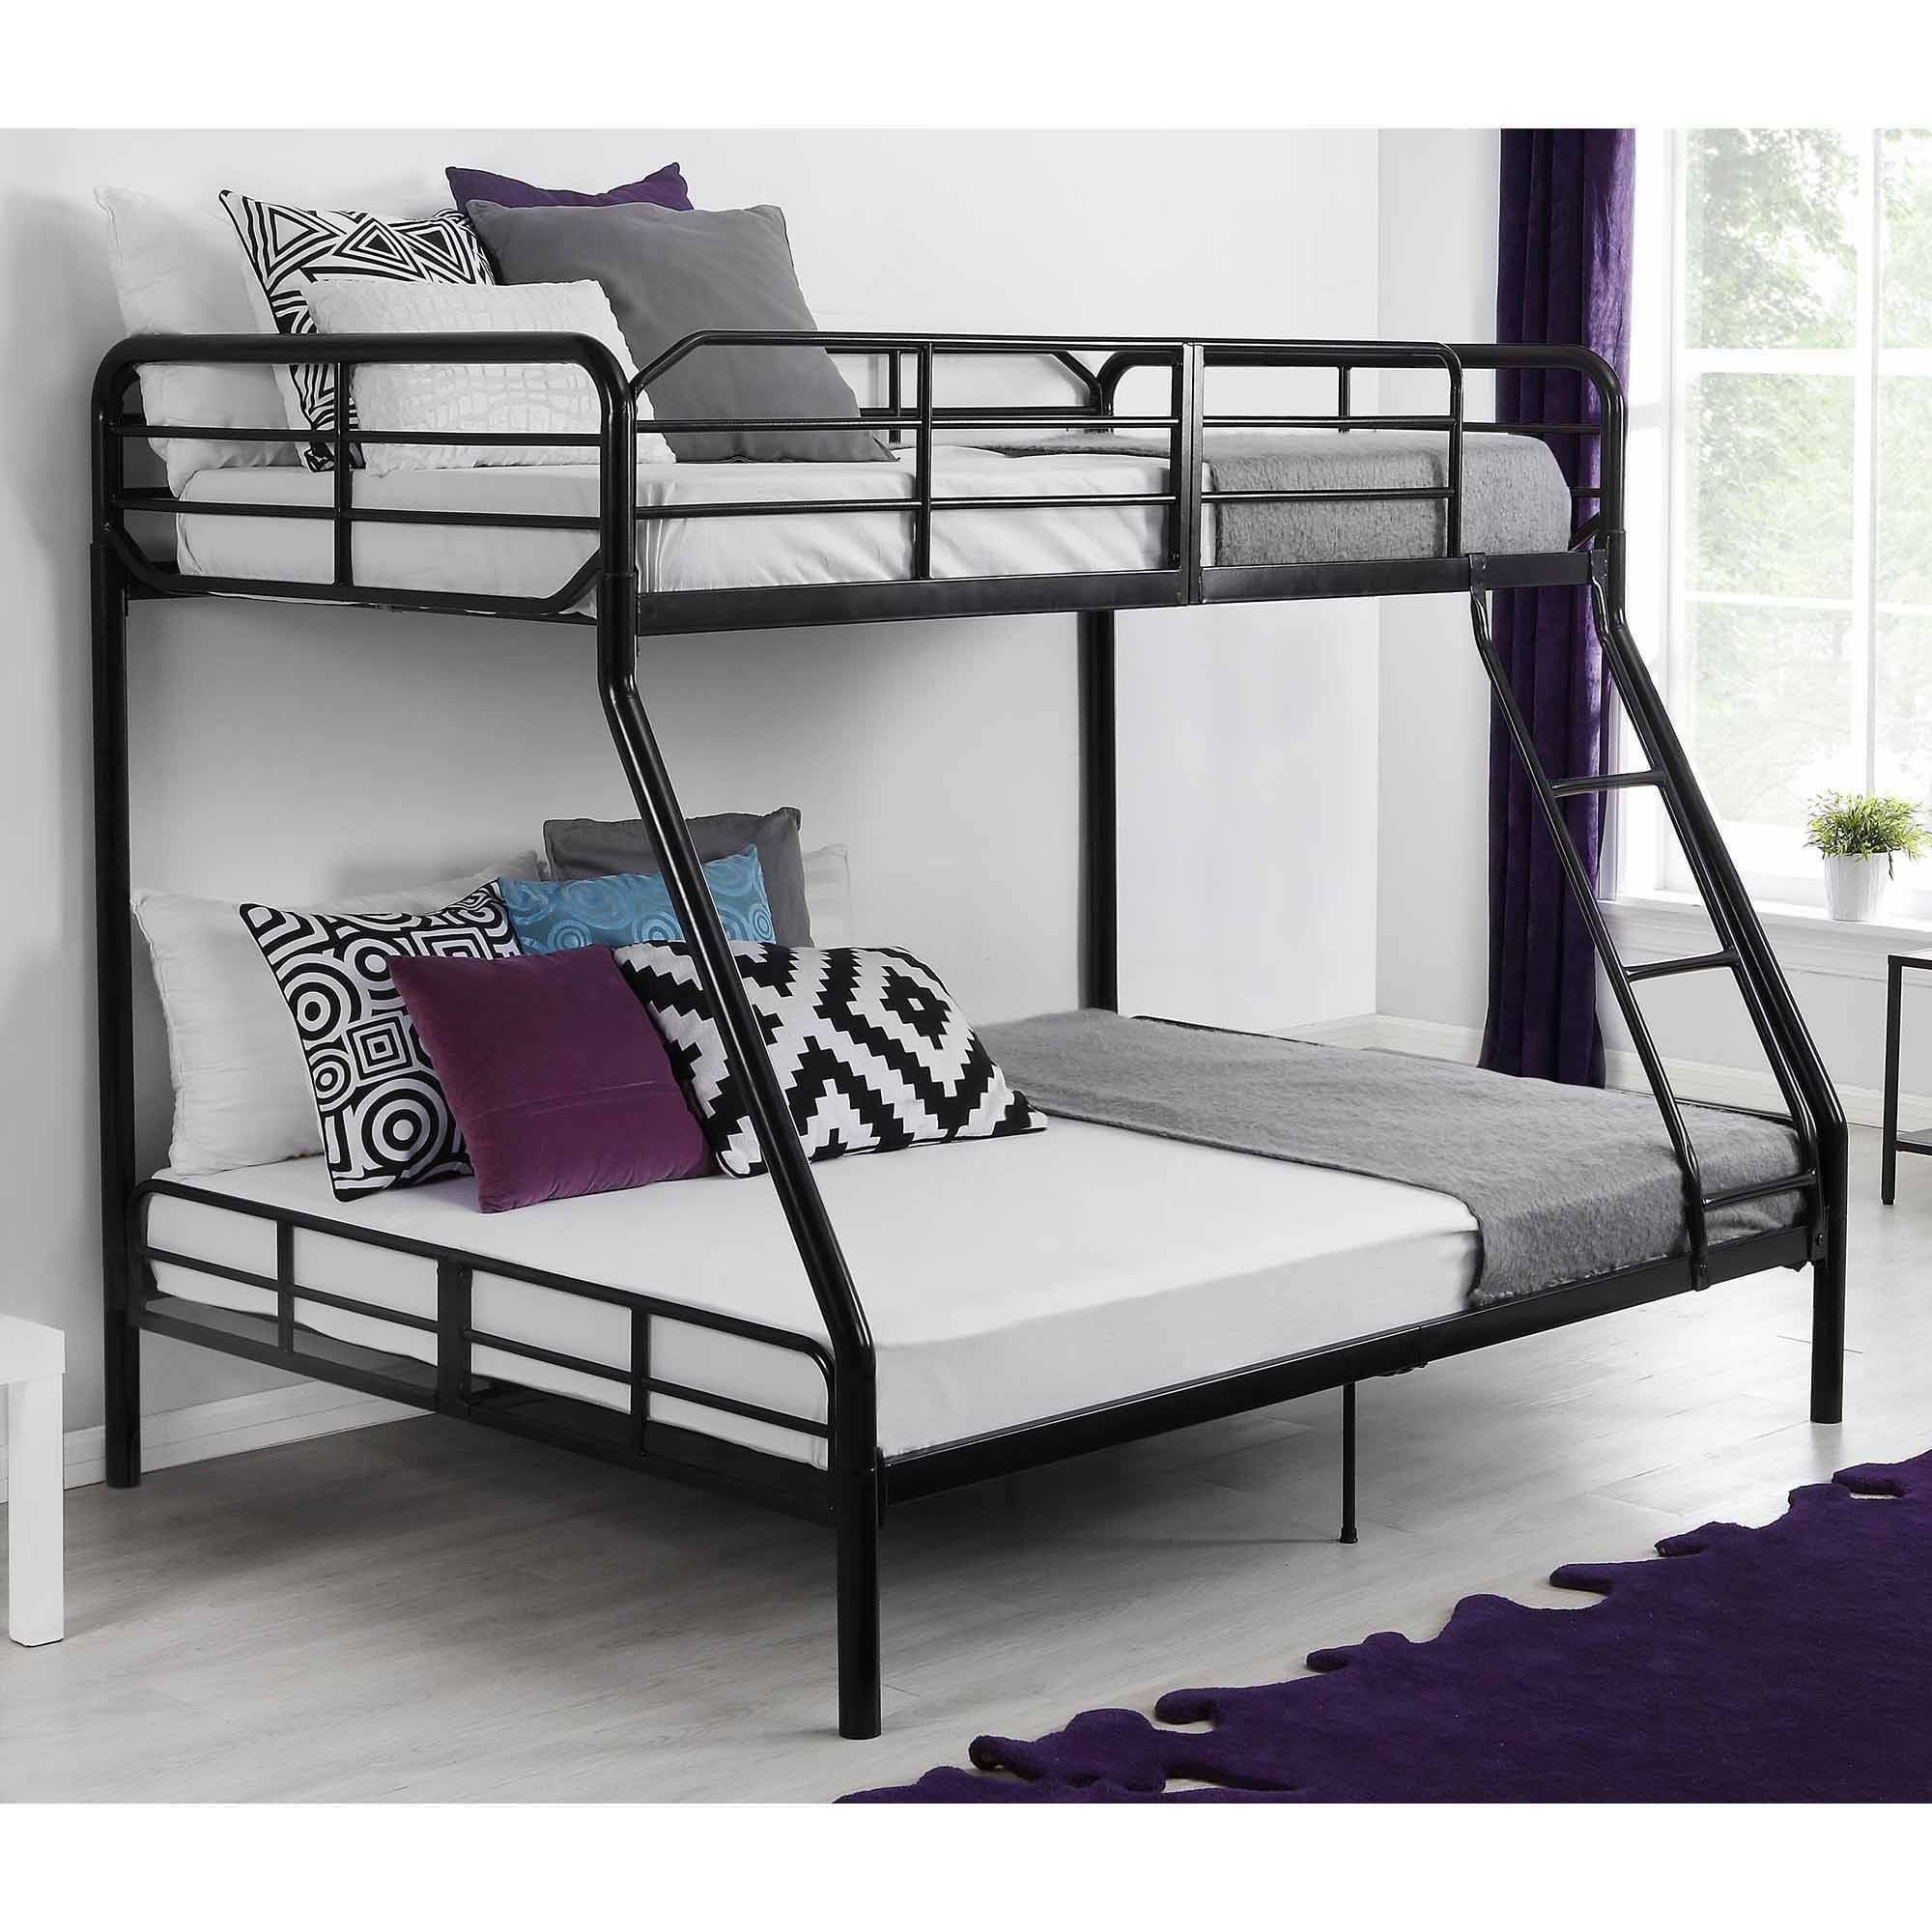 Kids Bedroom Furniture Stores Kids Rooms Walmartcom